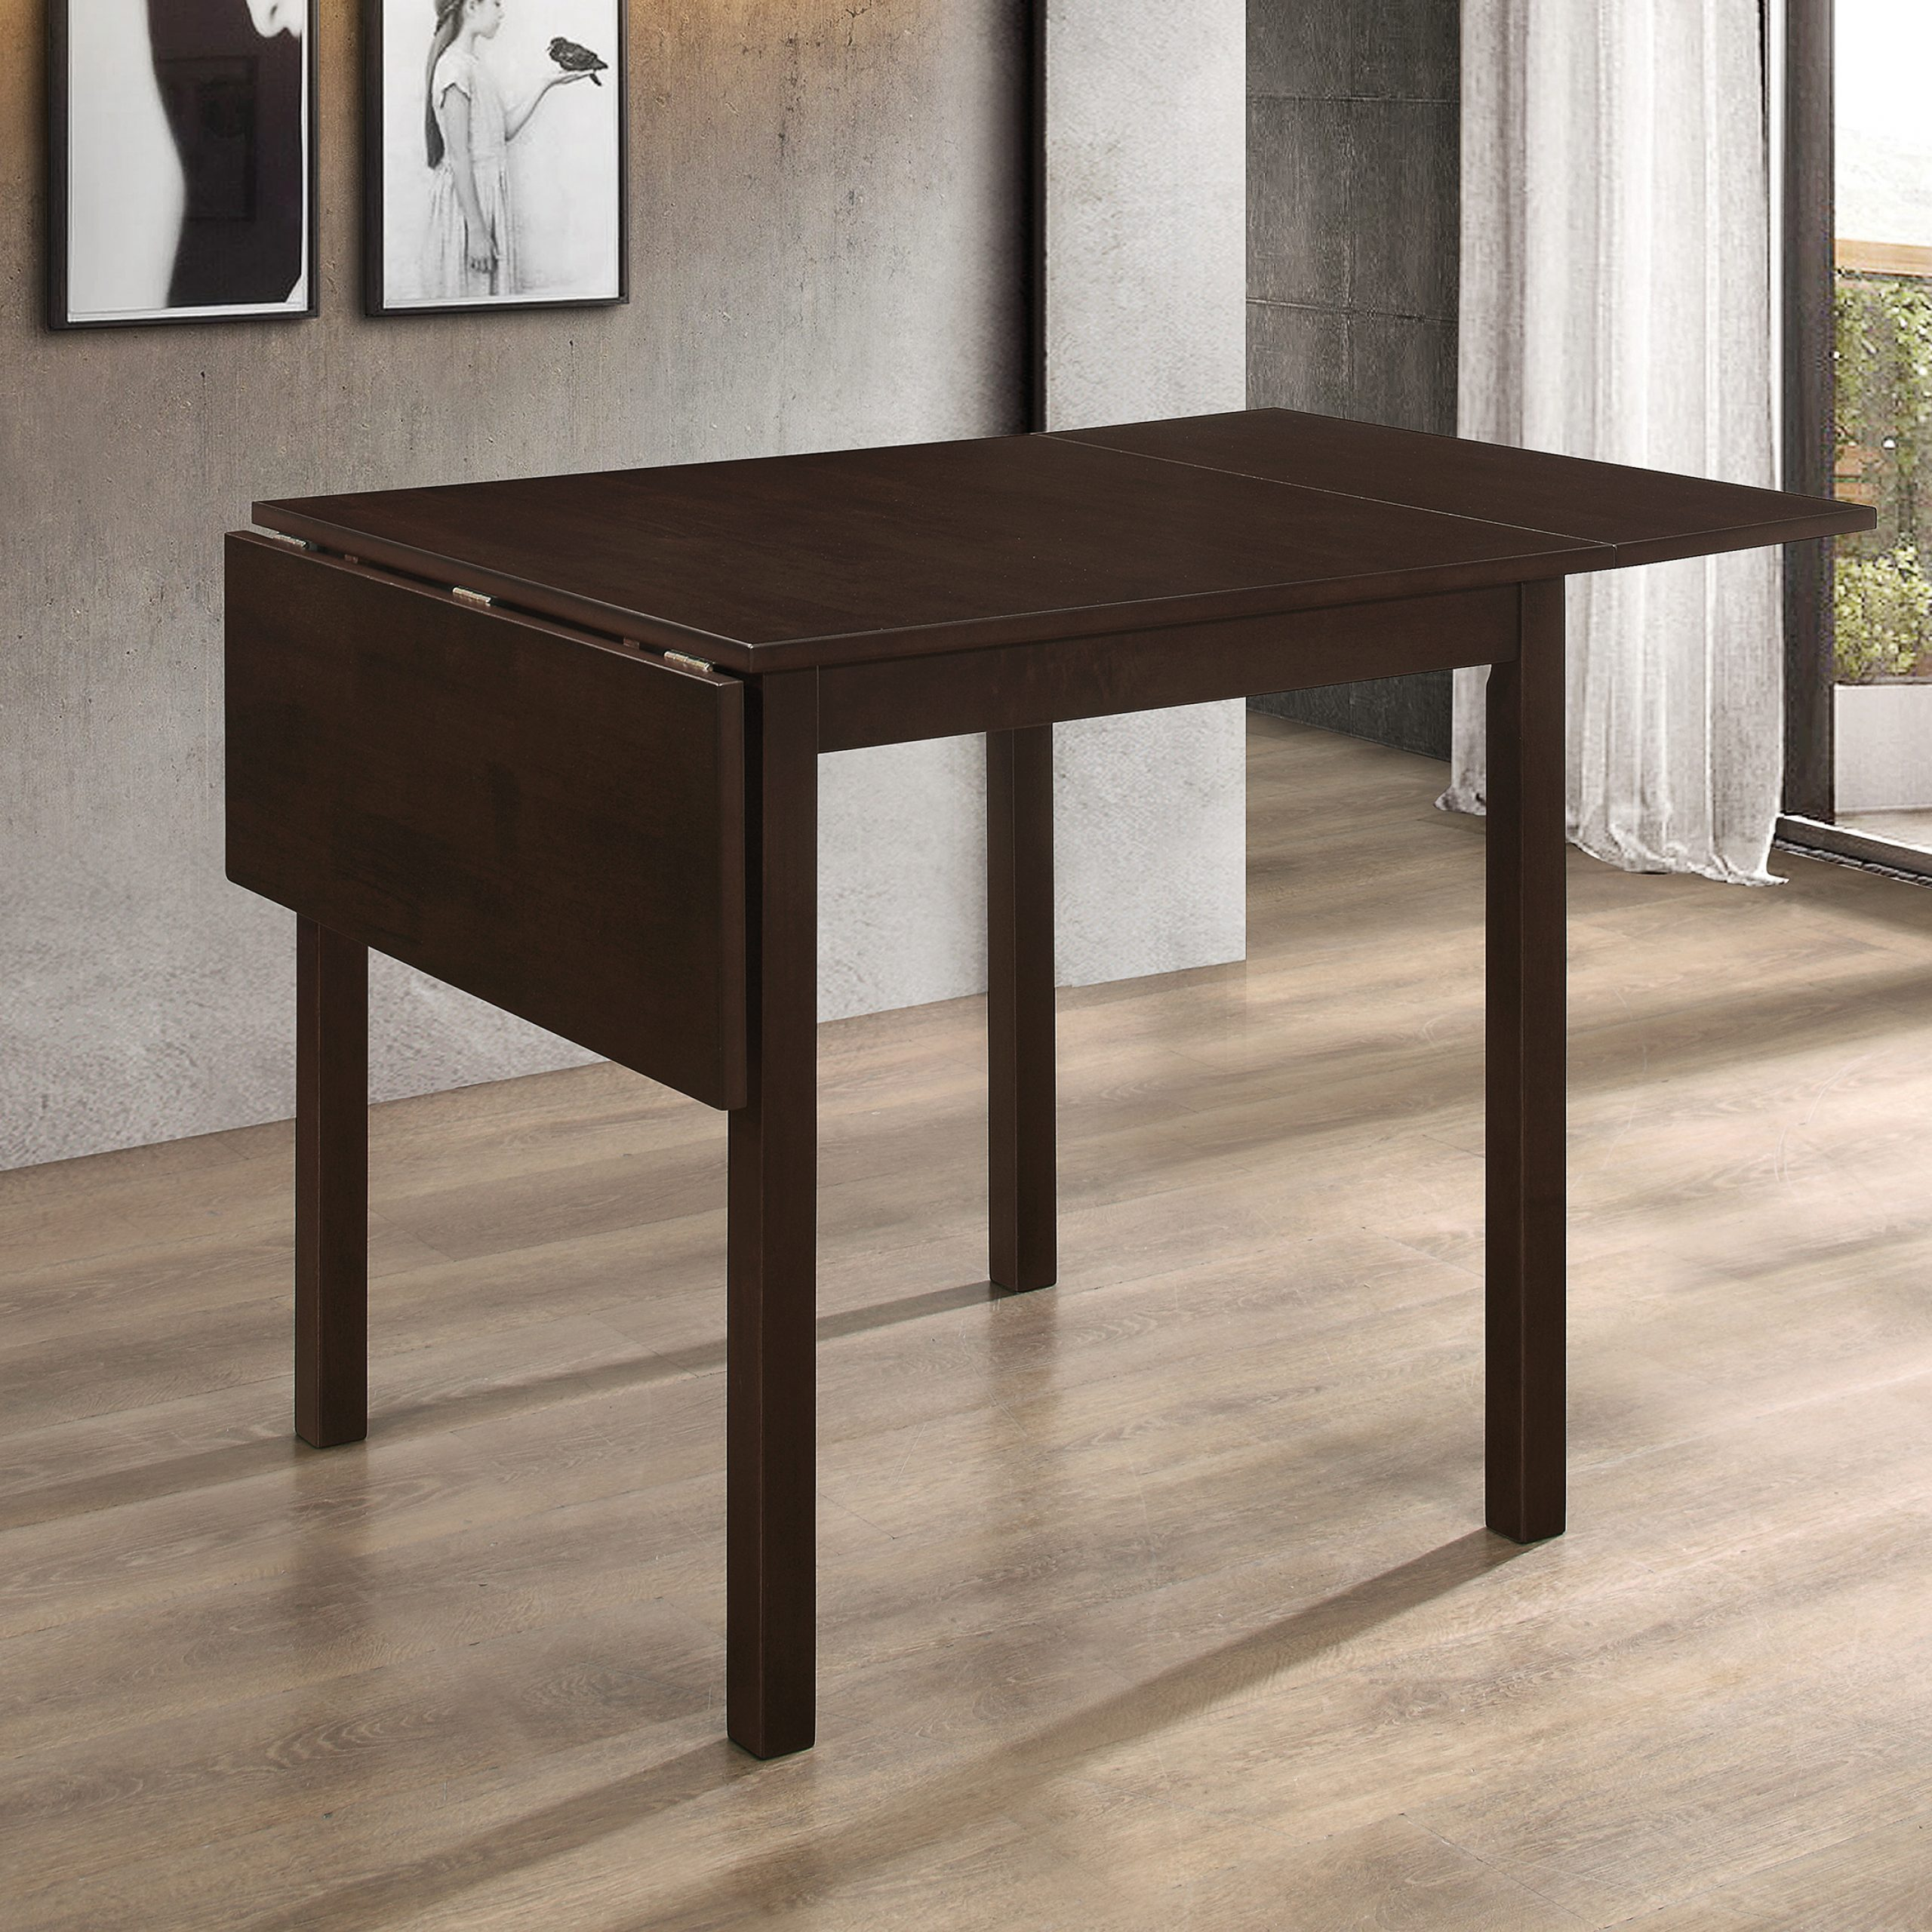 Transitional 4 Seating Drop Leaf Casual Dining Tables Inside 2020 Kelso Rectangular Dining Table With Drop Leaf Cappuccino (View 18 of 25)